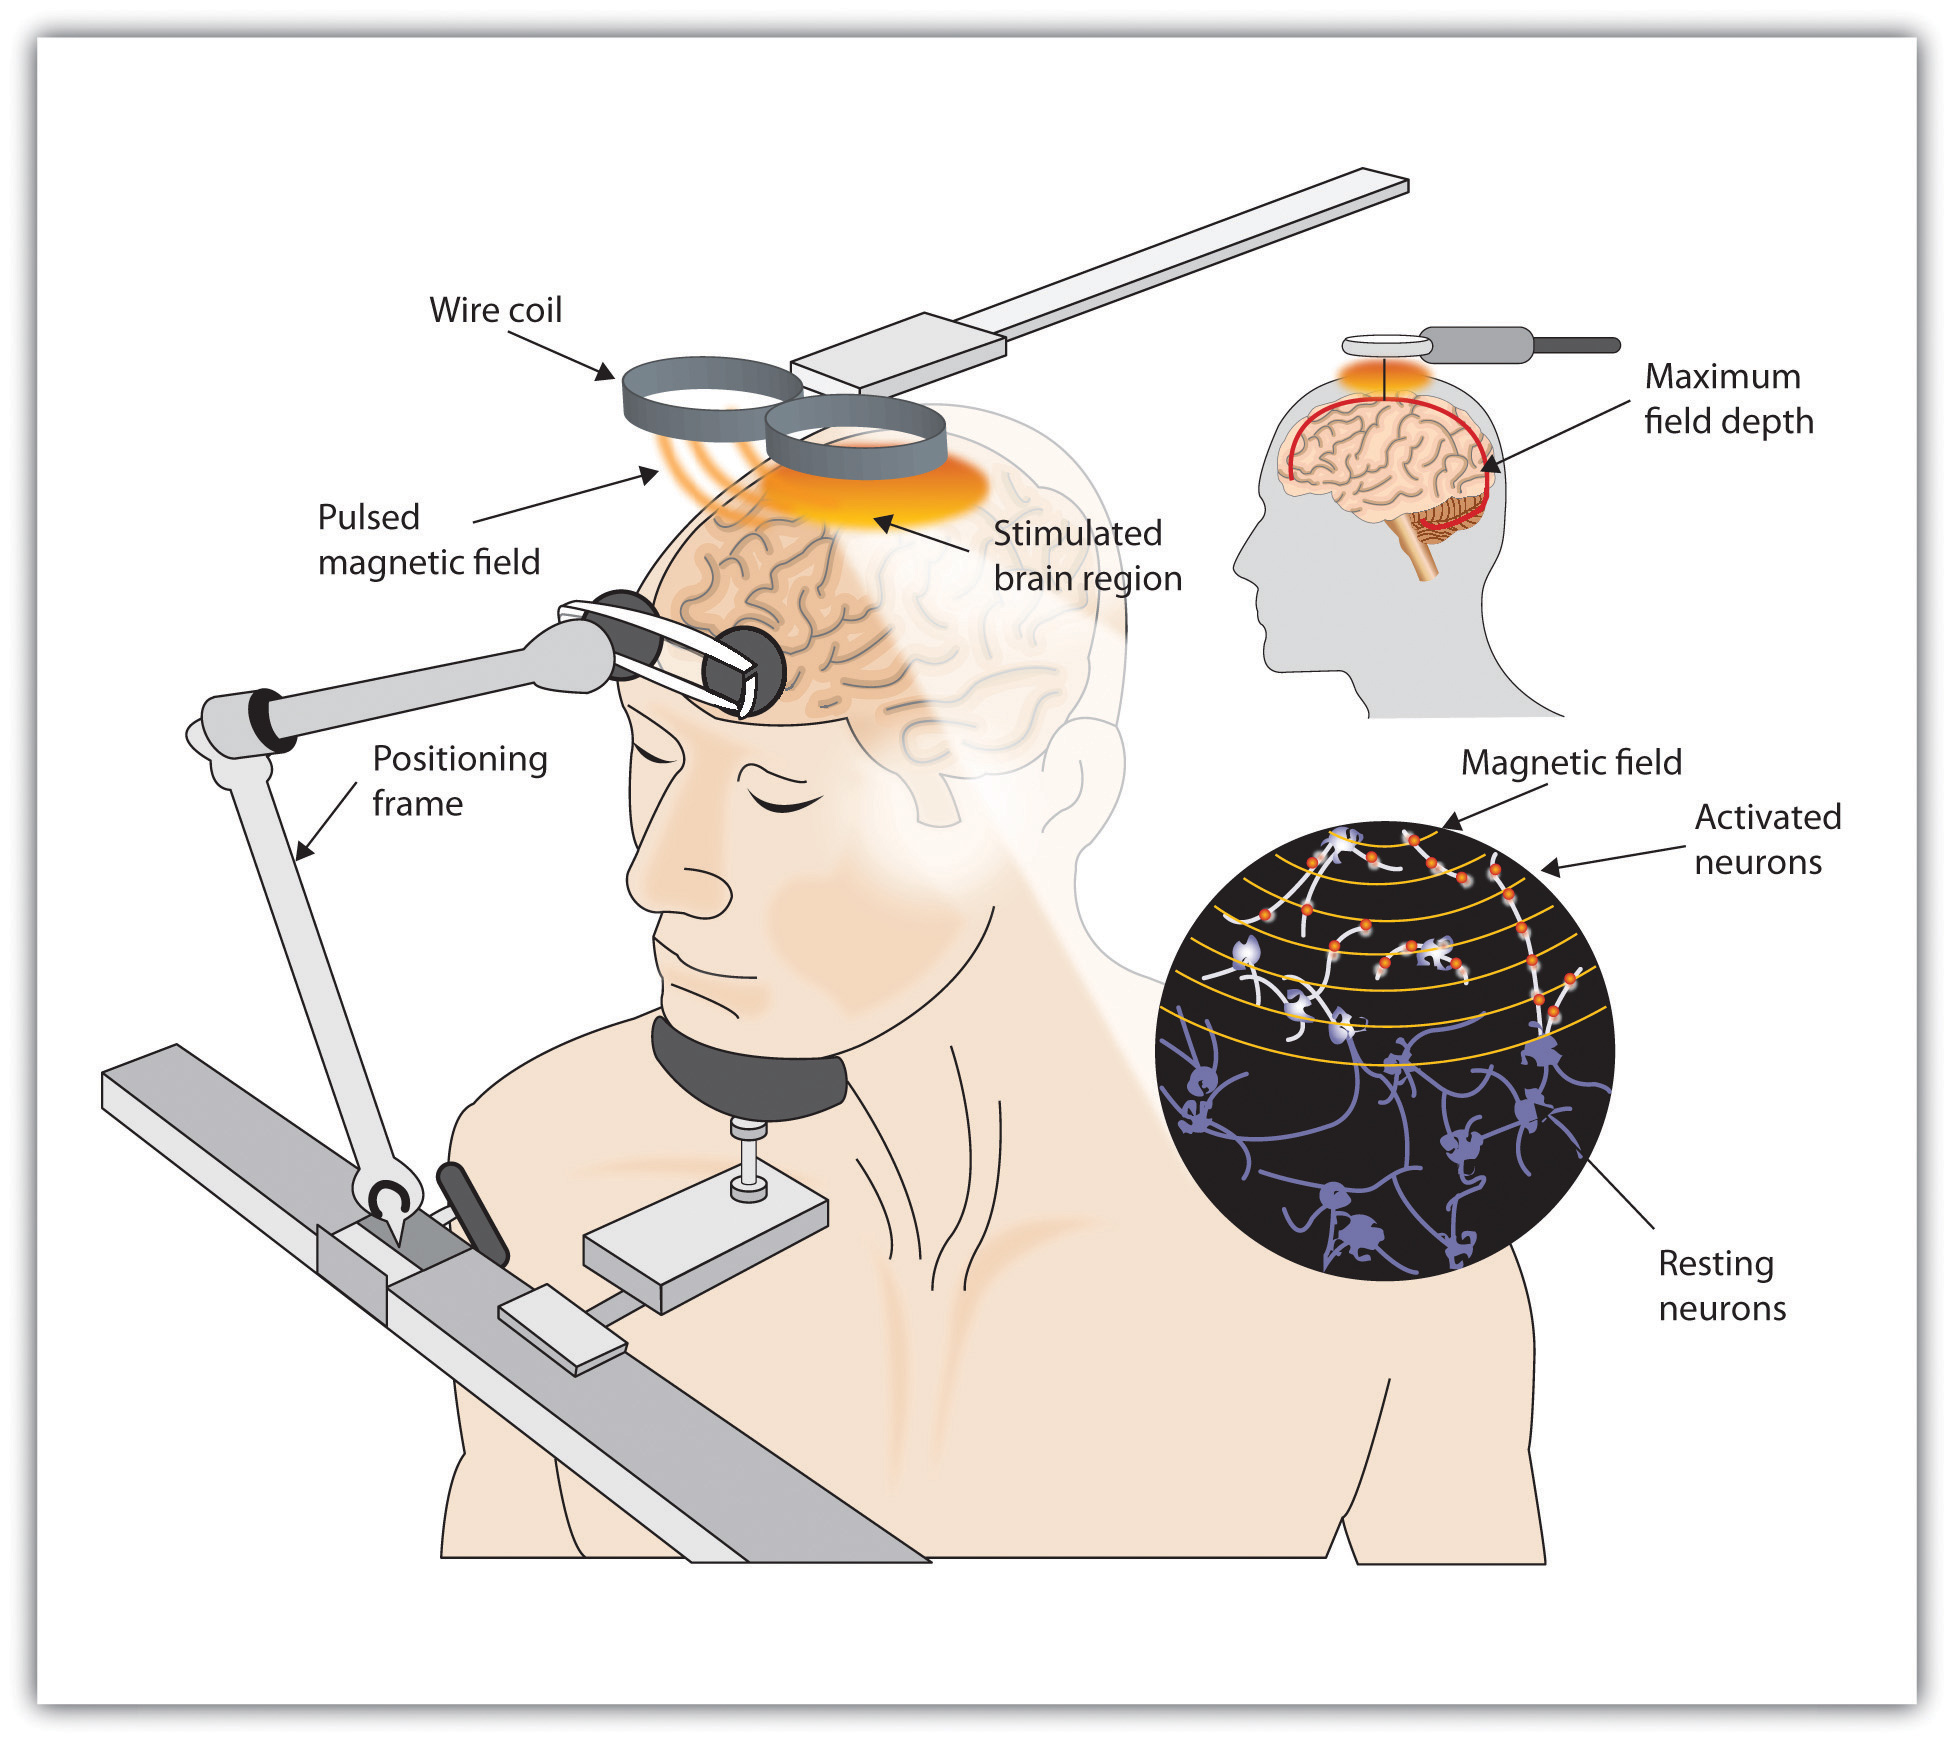 "A TMS device is depicted in a drawing alongside a persons head and torso. The person is resting their head on a metal chinrest connected to a base. From the base is an arm labelled ""positioning frame"", which leads to a padded bar in front of the person's head. A metal bar above the person's head has two flat circular pieces at the end labelled ""wire coil"". The drawing shows an internal view of the person's head depicting their brain, which has the label ""stimulated brain region"" at the point below the wire coil, as well as a depiction of the ""pulsed magnetic field"" with wavy lines to indicate movement. To the right of this image is a smaller depiction of the magnetic field as symbolized by parallel wavy lines intersecting with a depiction of activated neurons. Below the magnetic field are resting neurons."